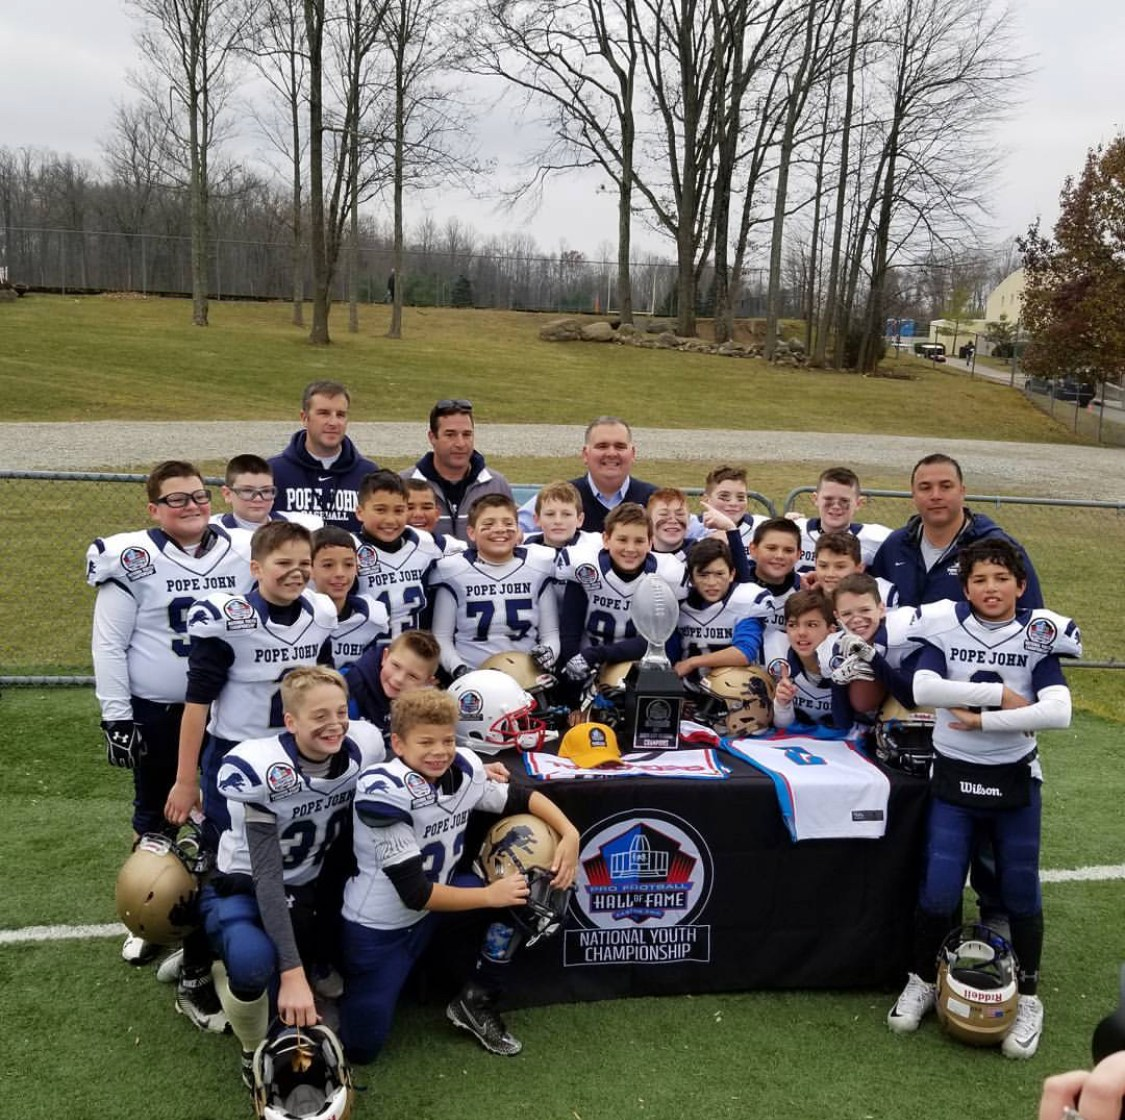 Jr Lions 10U Football team poses after winning regional championship